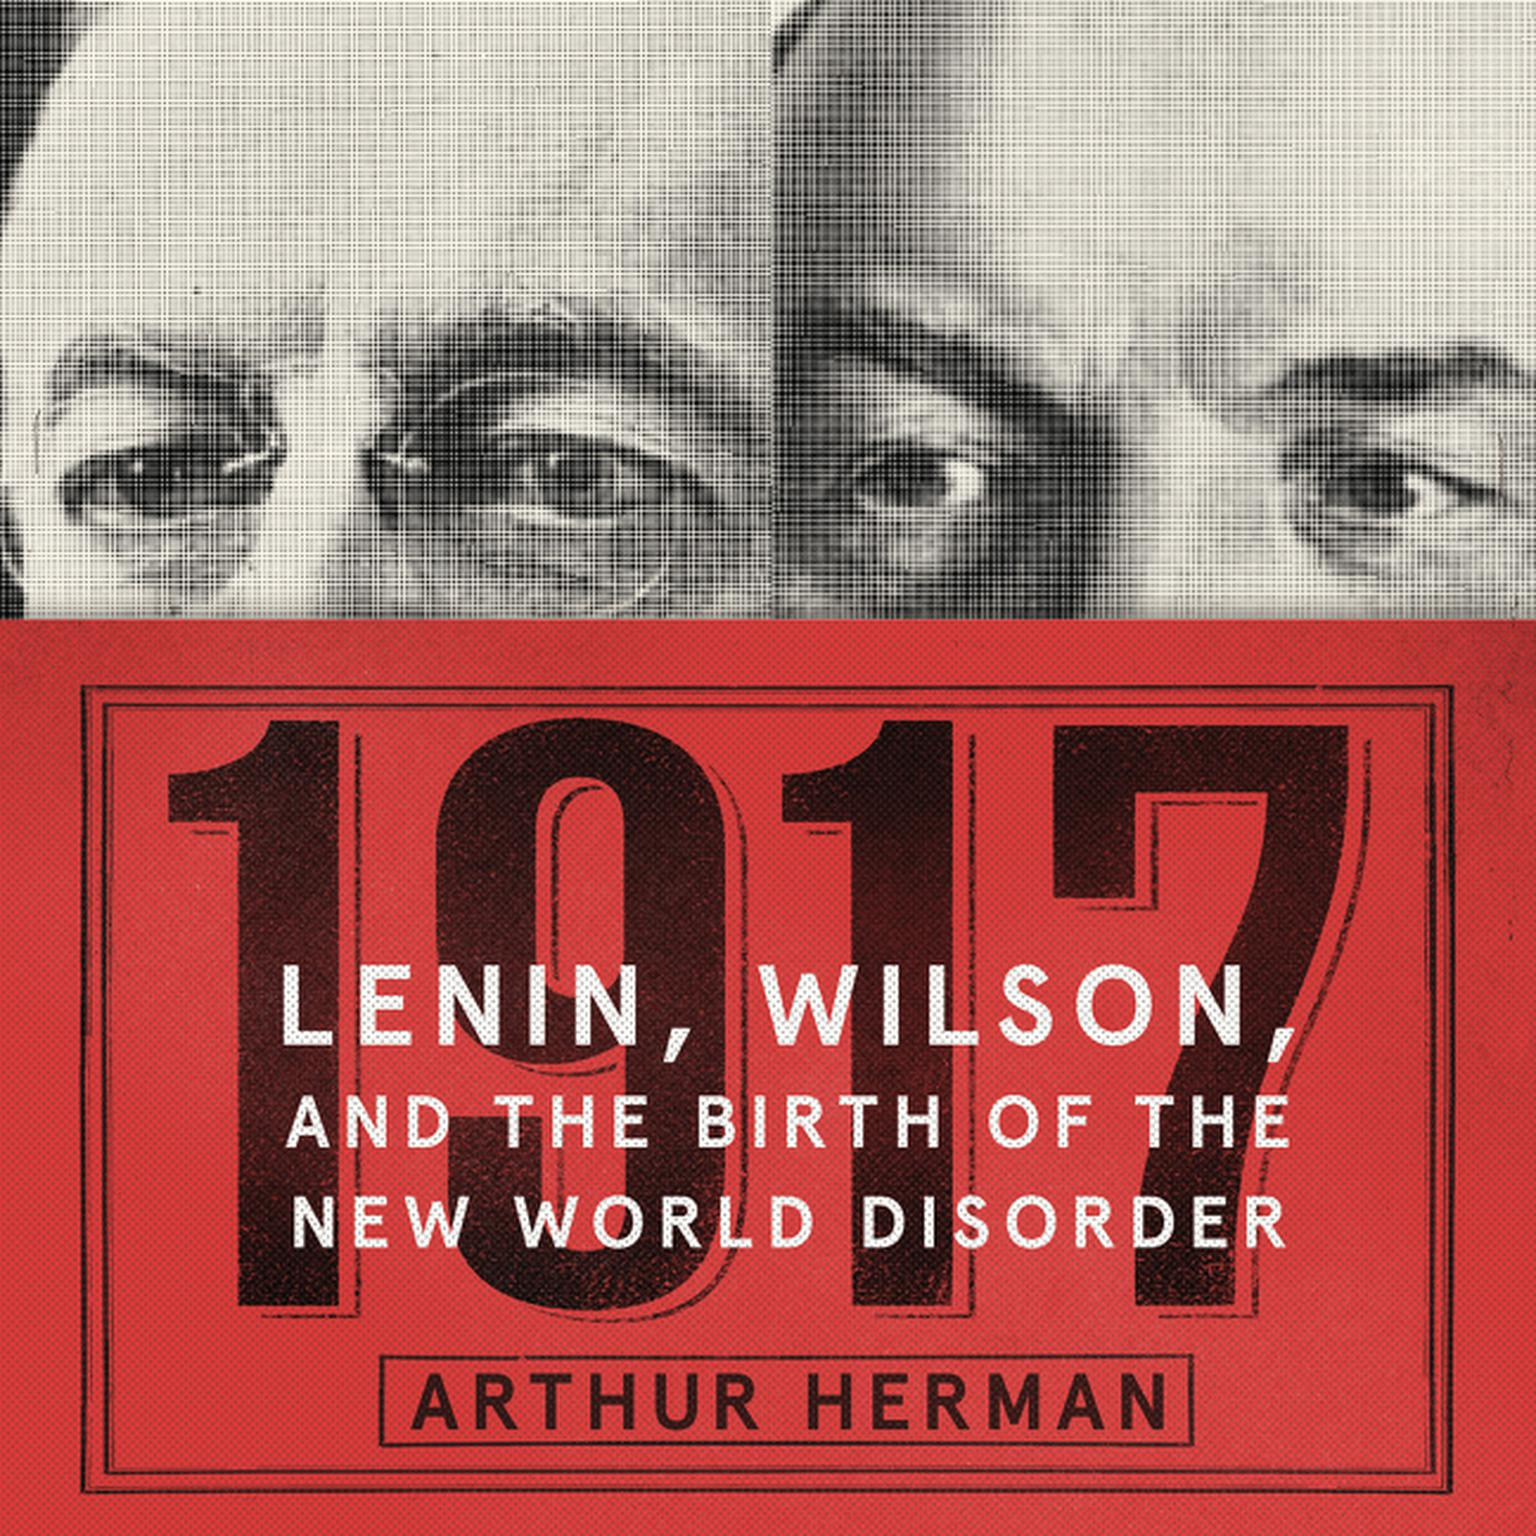 Printable 1917: Lenin, Wilson, and the Birth of the New World Disorder Audiobook Cover Art